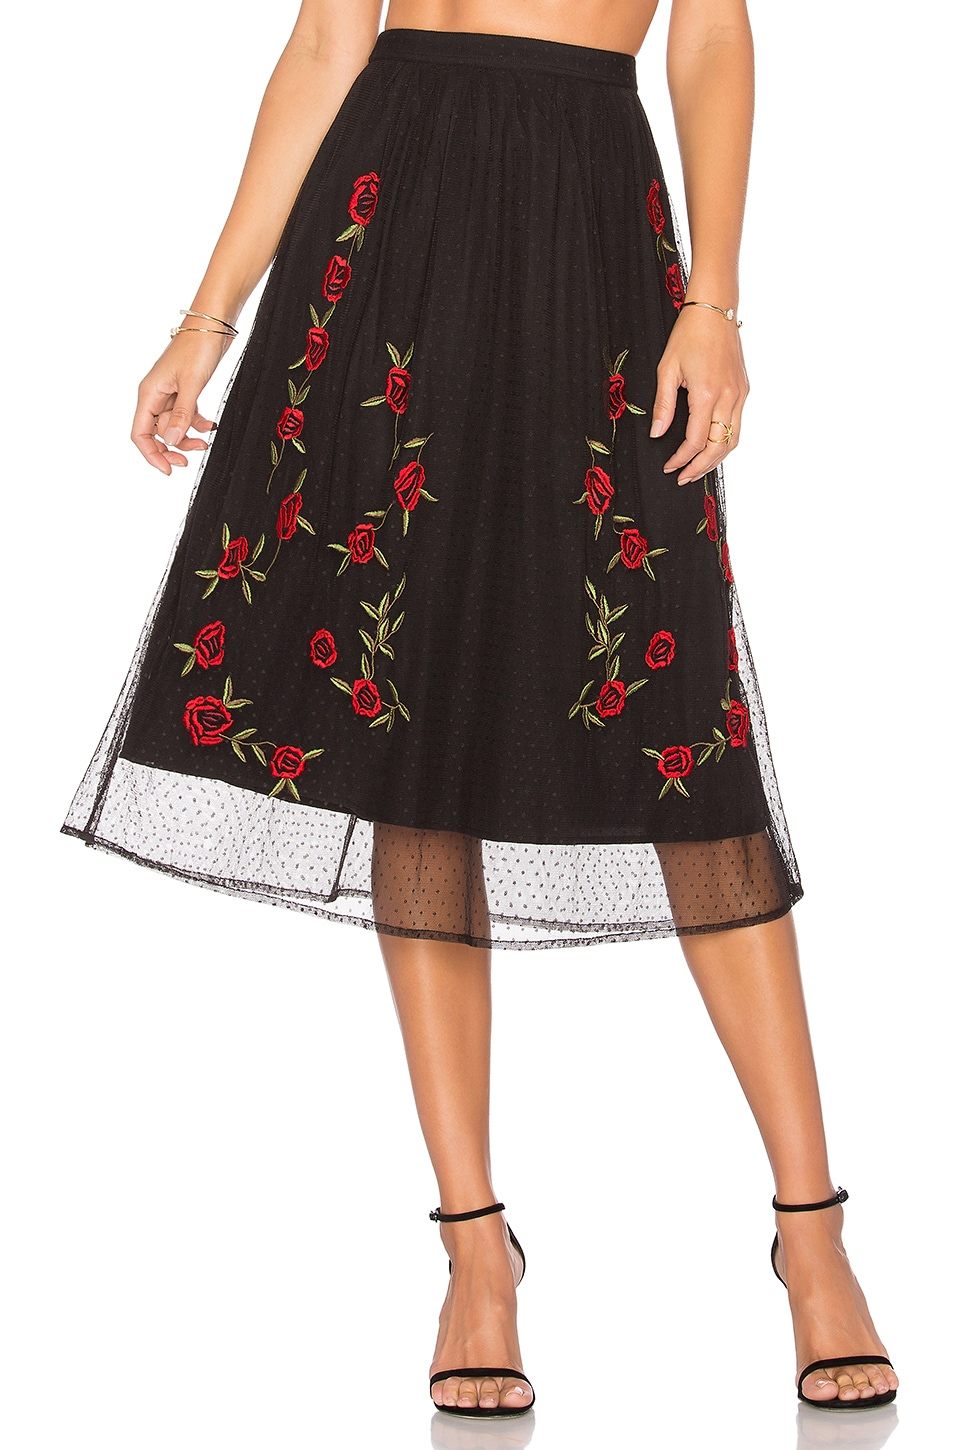 Lovers + Friends Sebastian Skirt in Black